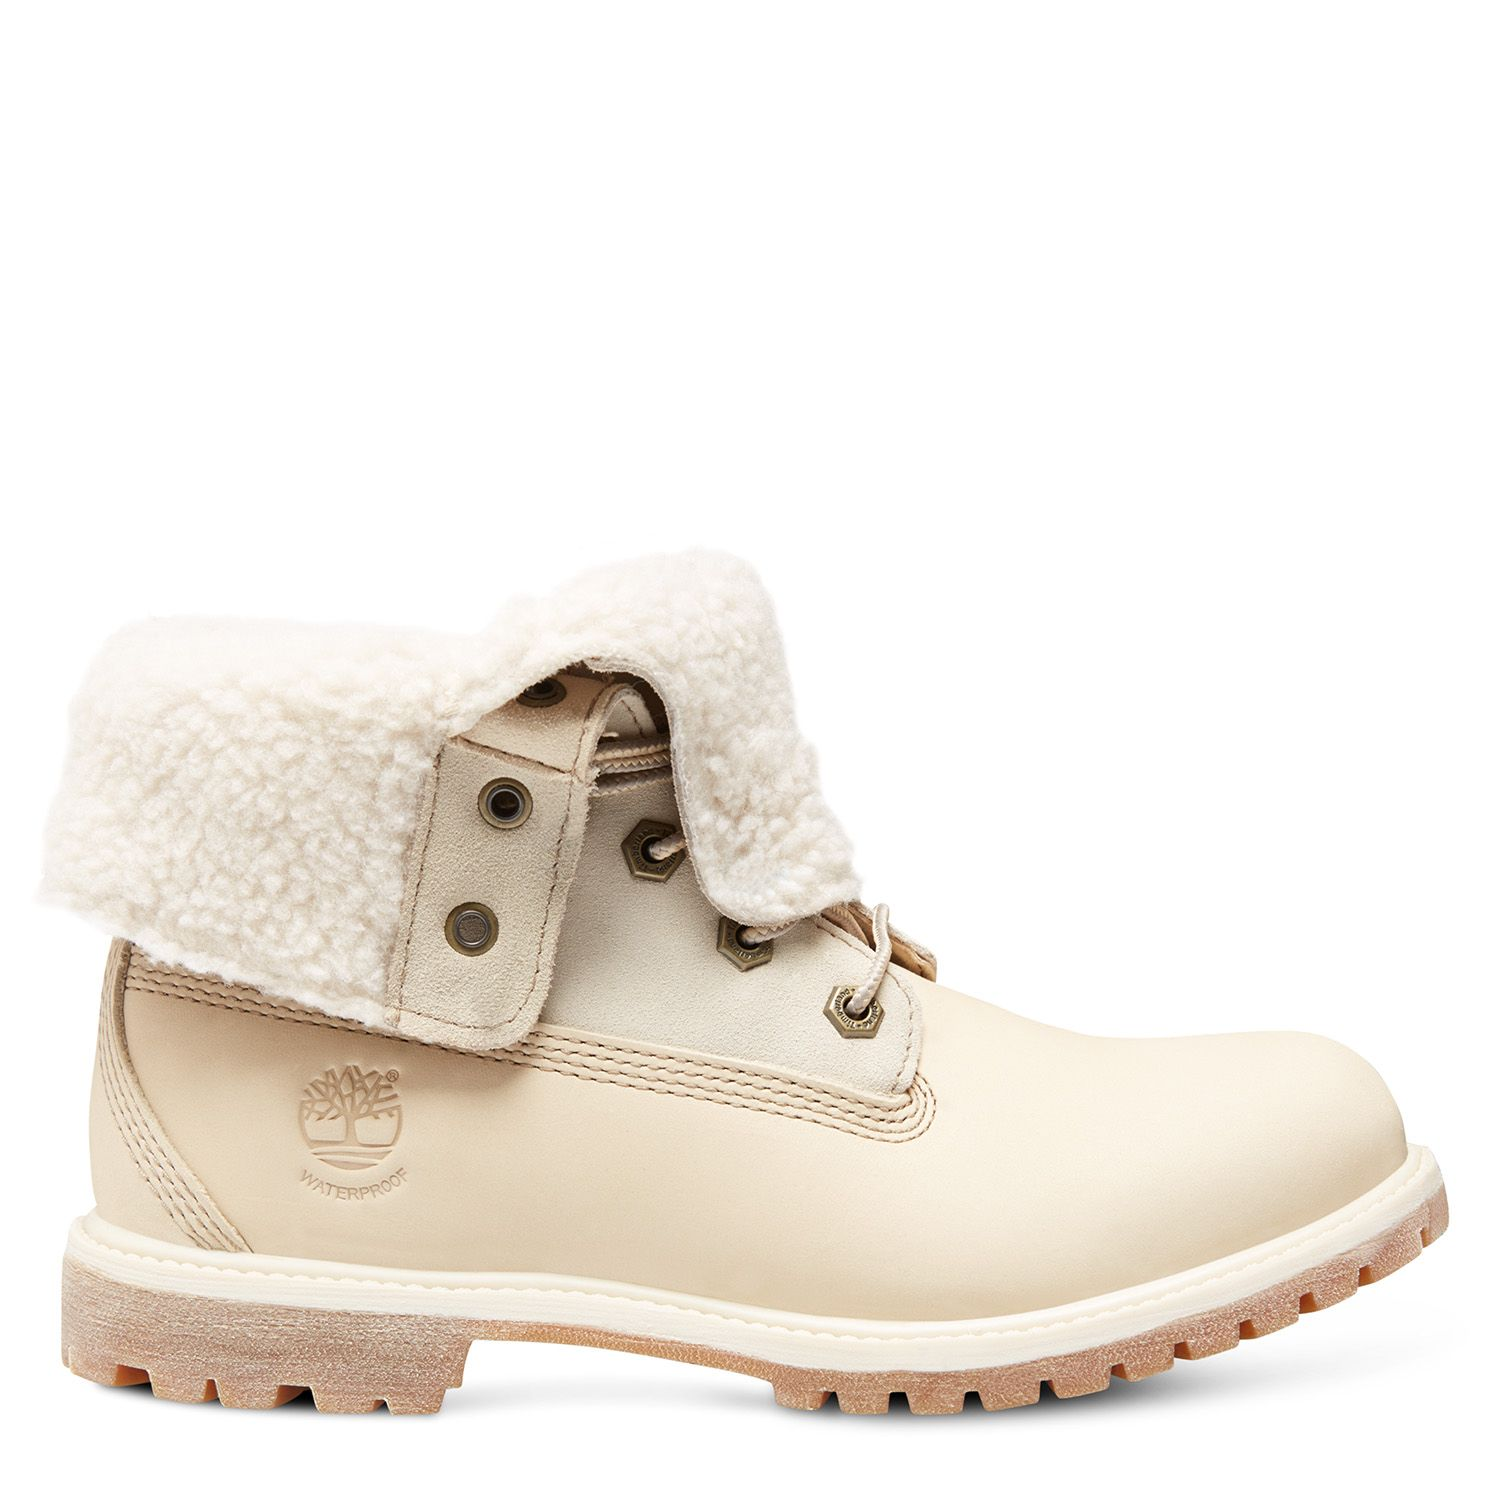 Boots femme Timberland Mukluk 16-Inch WP en cuir bottes chaussures femme hiver CAMPER Ballerines femme. ROBERTO P Luxury Sneakers & Tennis basses homme. P1p0w